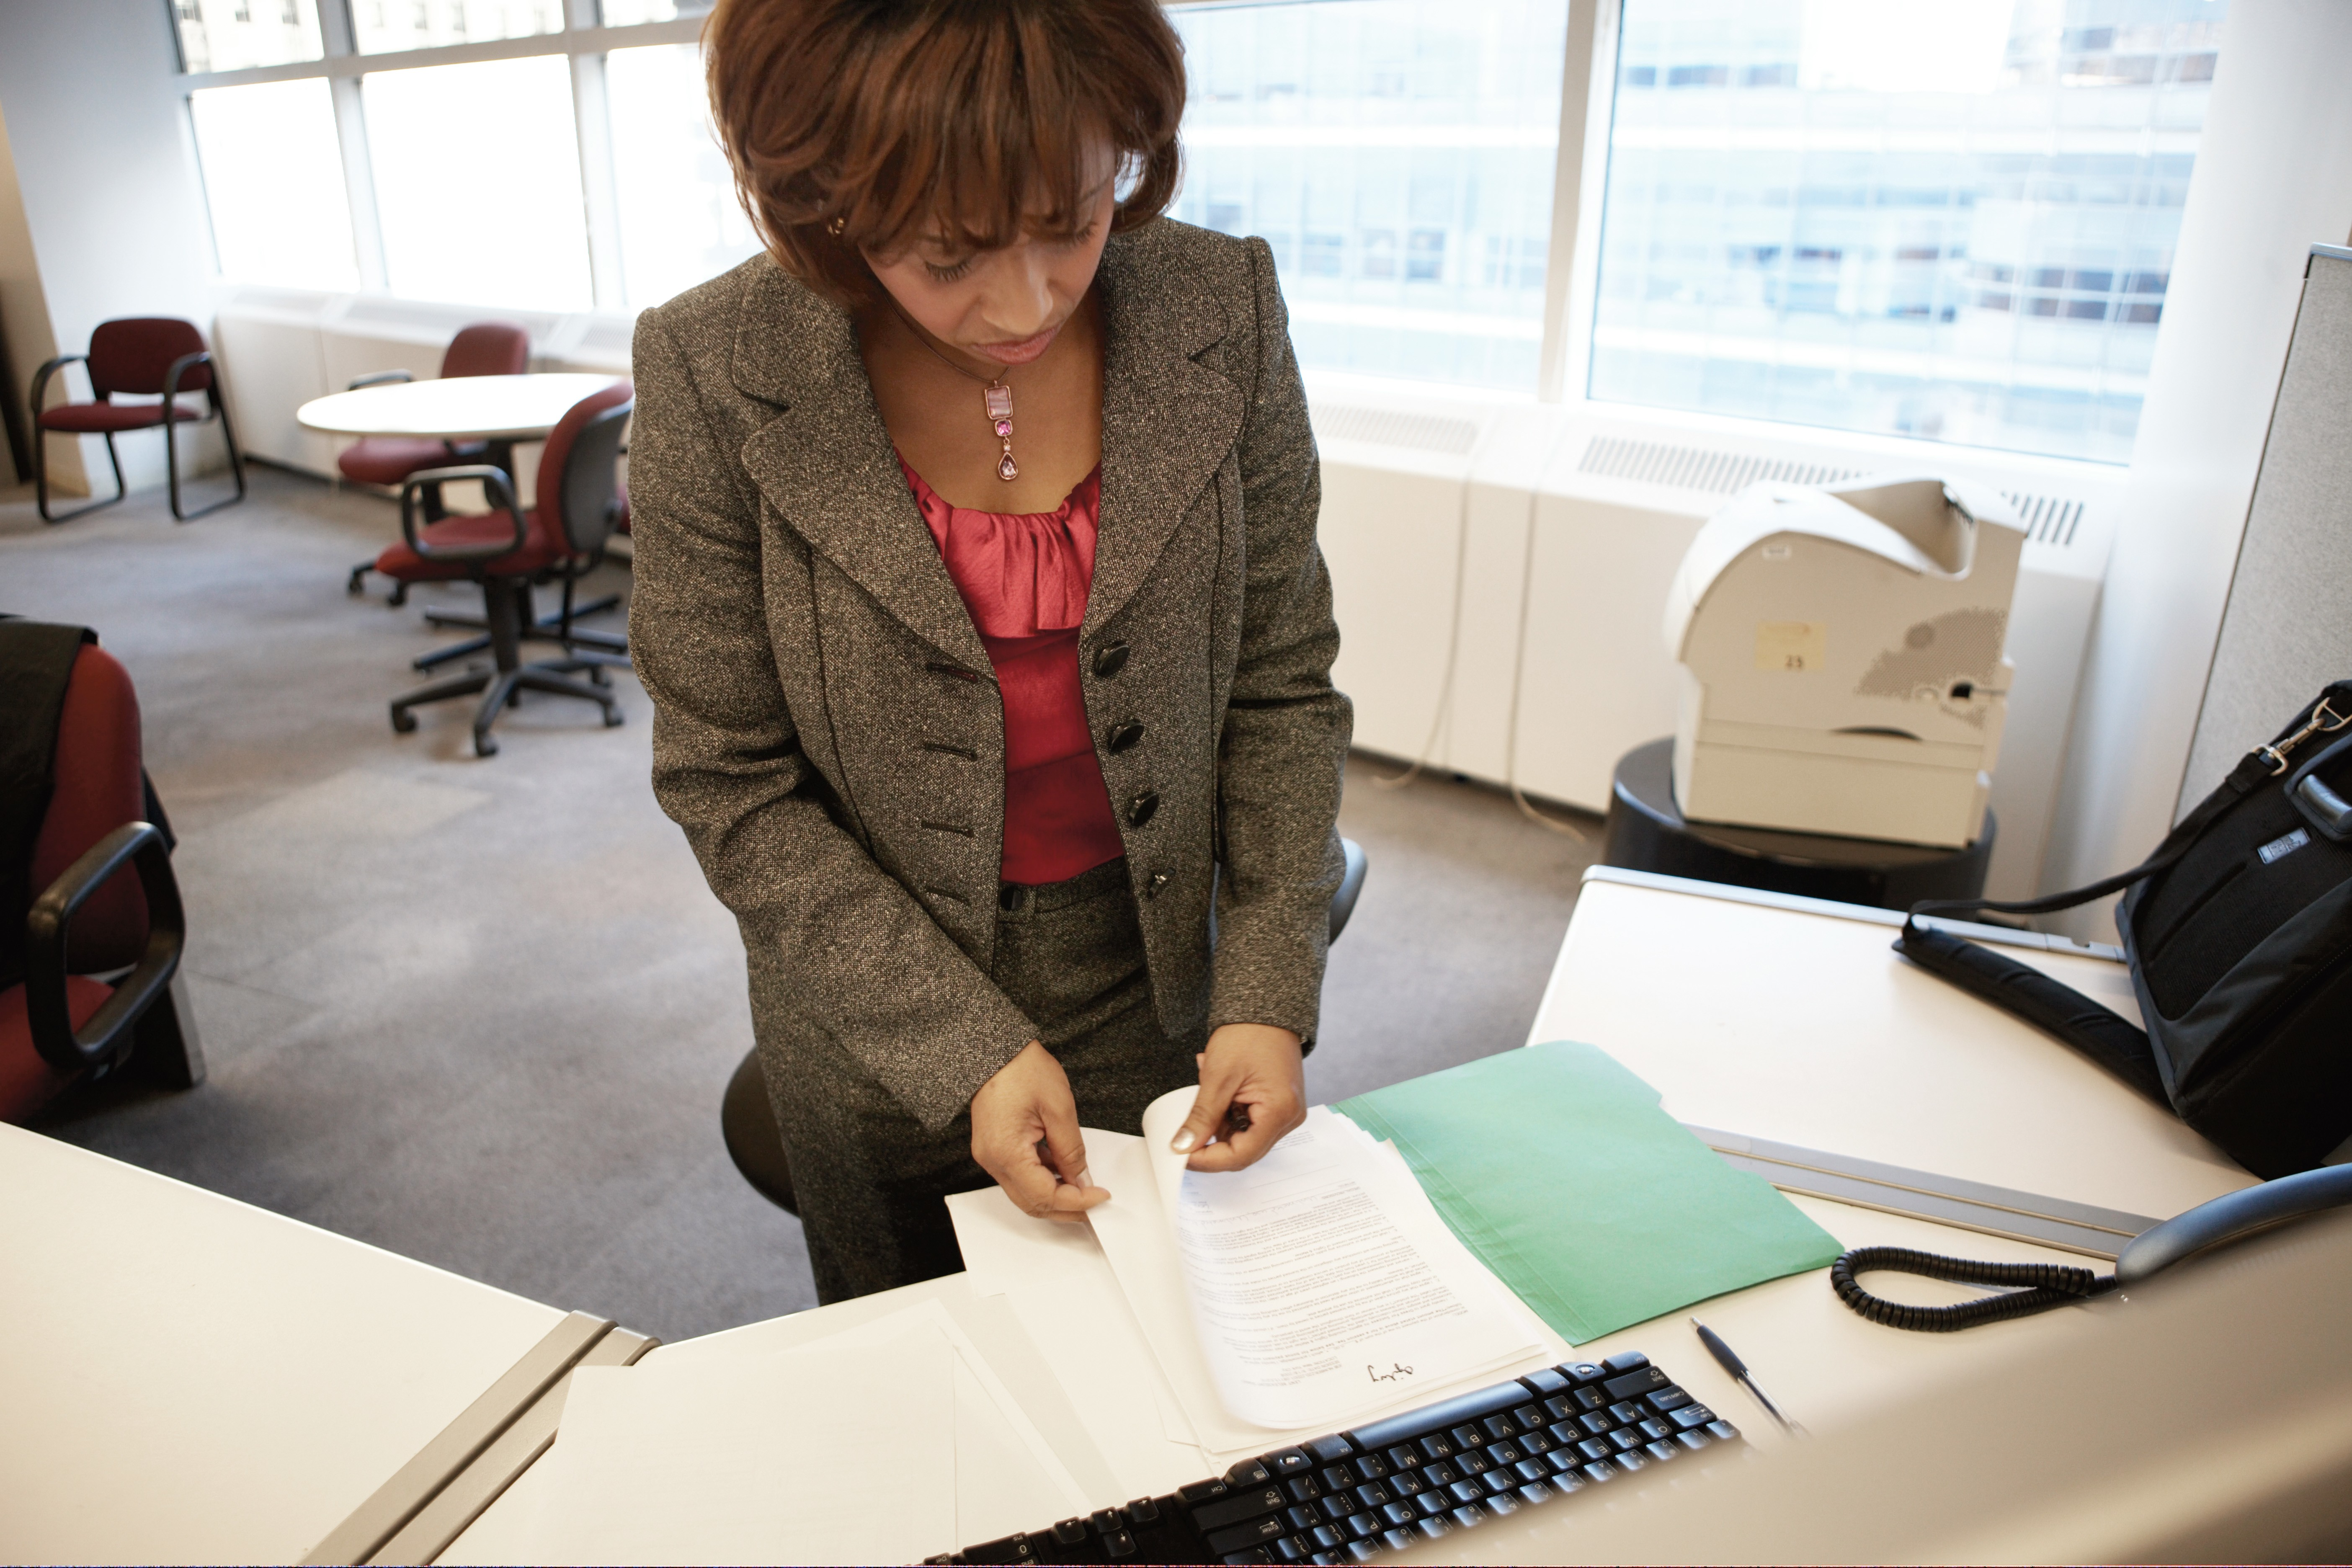 Woman Standing at Desk Looking Through Papers